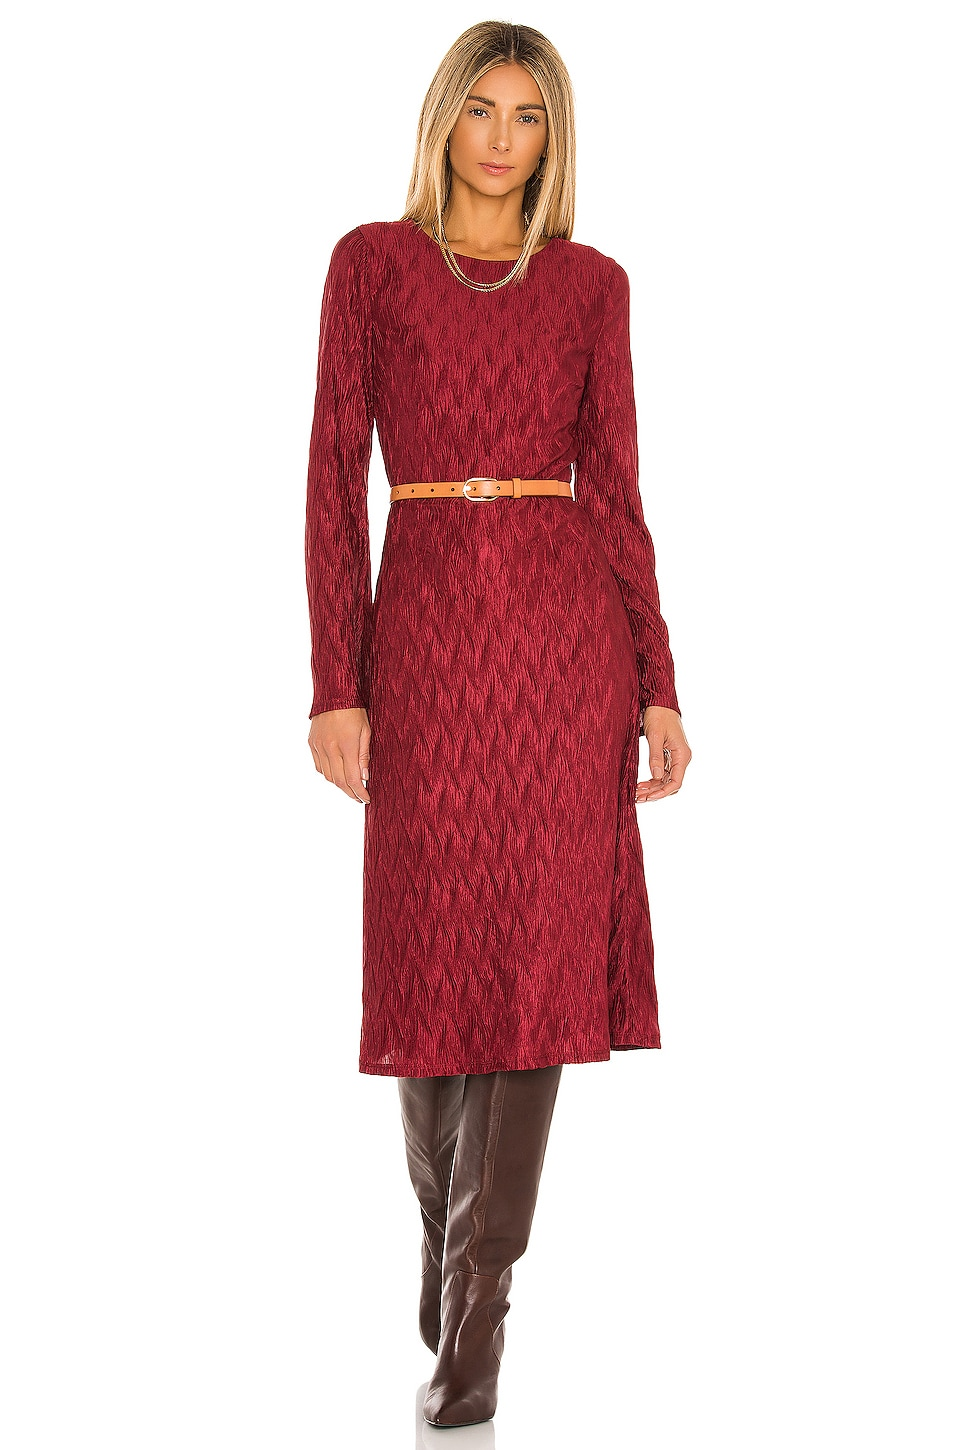 House of Harlow 1960 x REVOLVE Nona Long Sleeve Dress in Dark Red